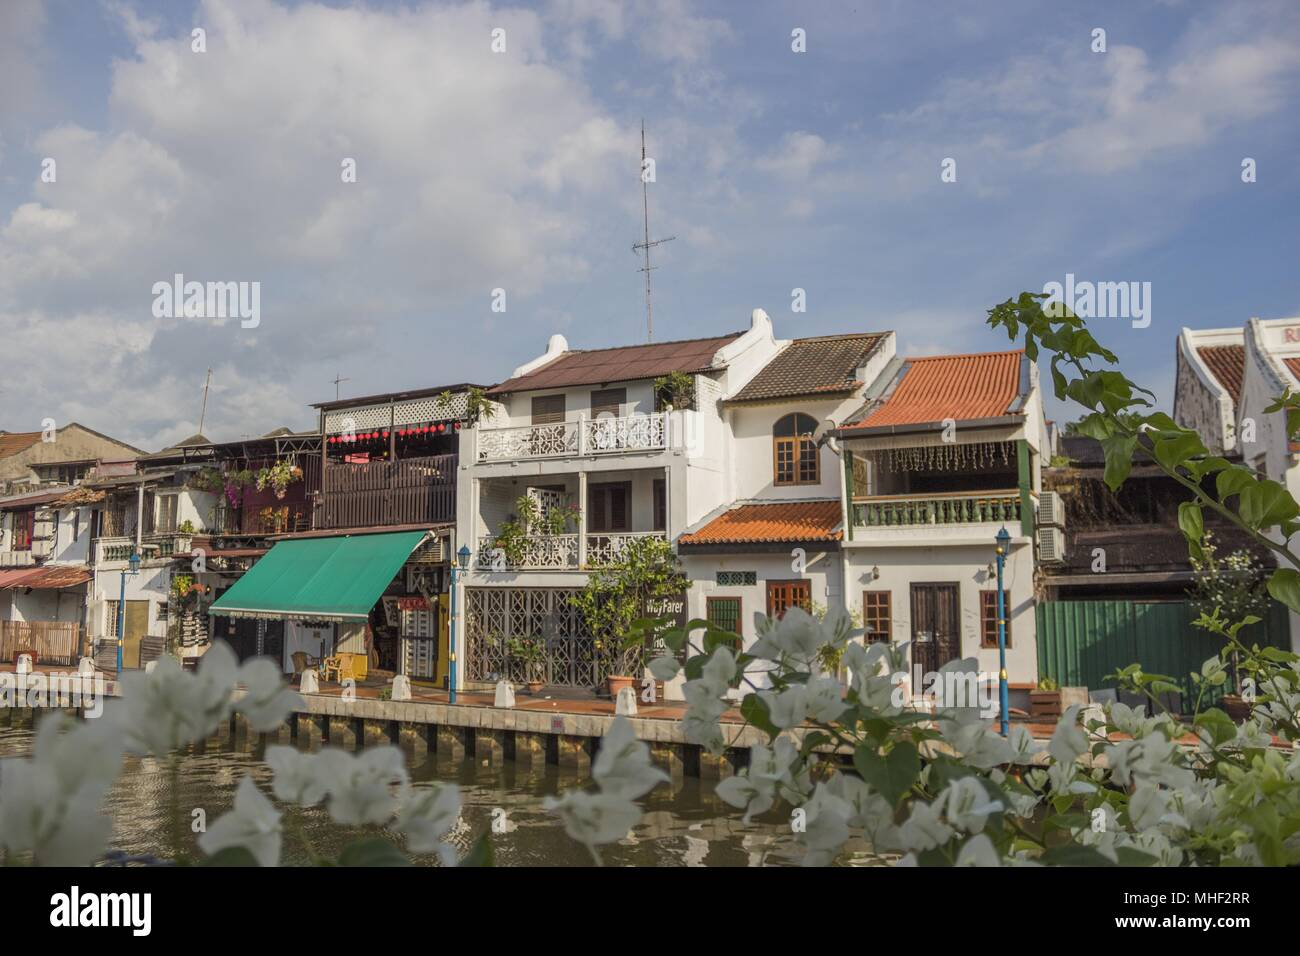 Sensational A Terrace Of Houses Line The River In Malacca Malaysia Download Free Architecture Designs Scobabritishbridgeorg